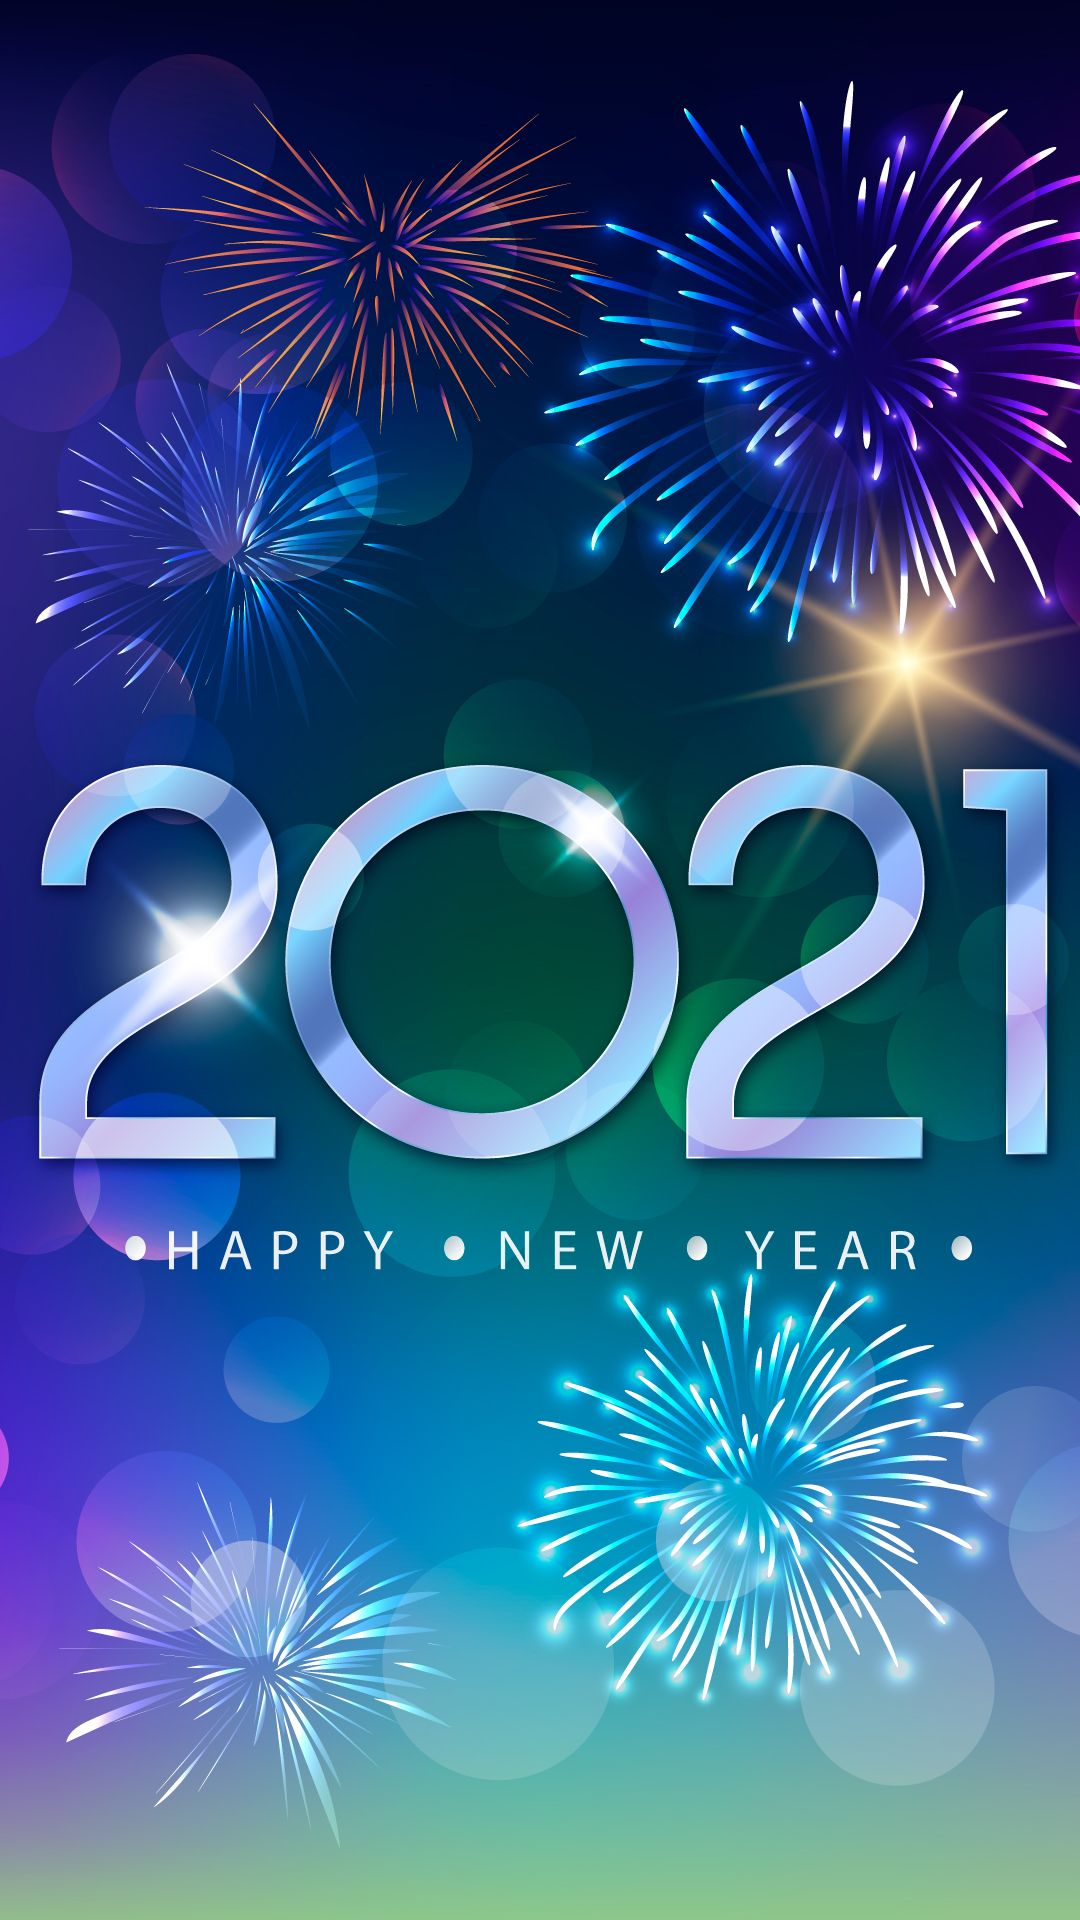 Happy New Year 2021 Wishes Images Photos With Latest Wallpaper Happy New Year Pictures Happy New Year Photo Happy New Year Wallpaper